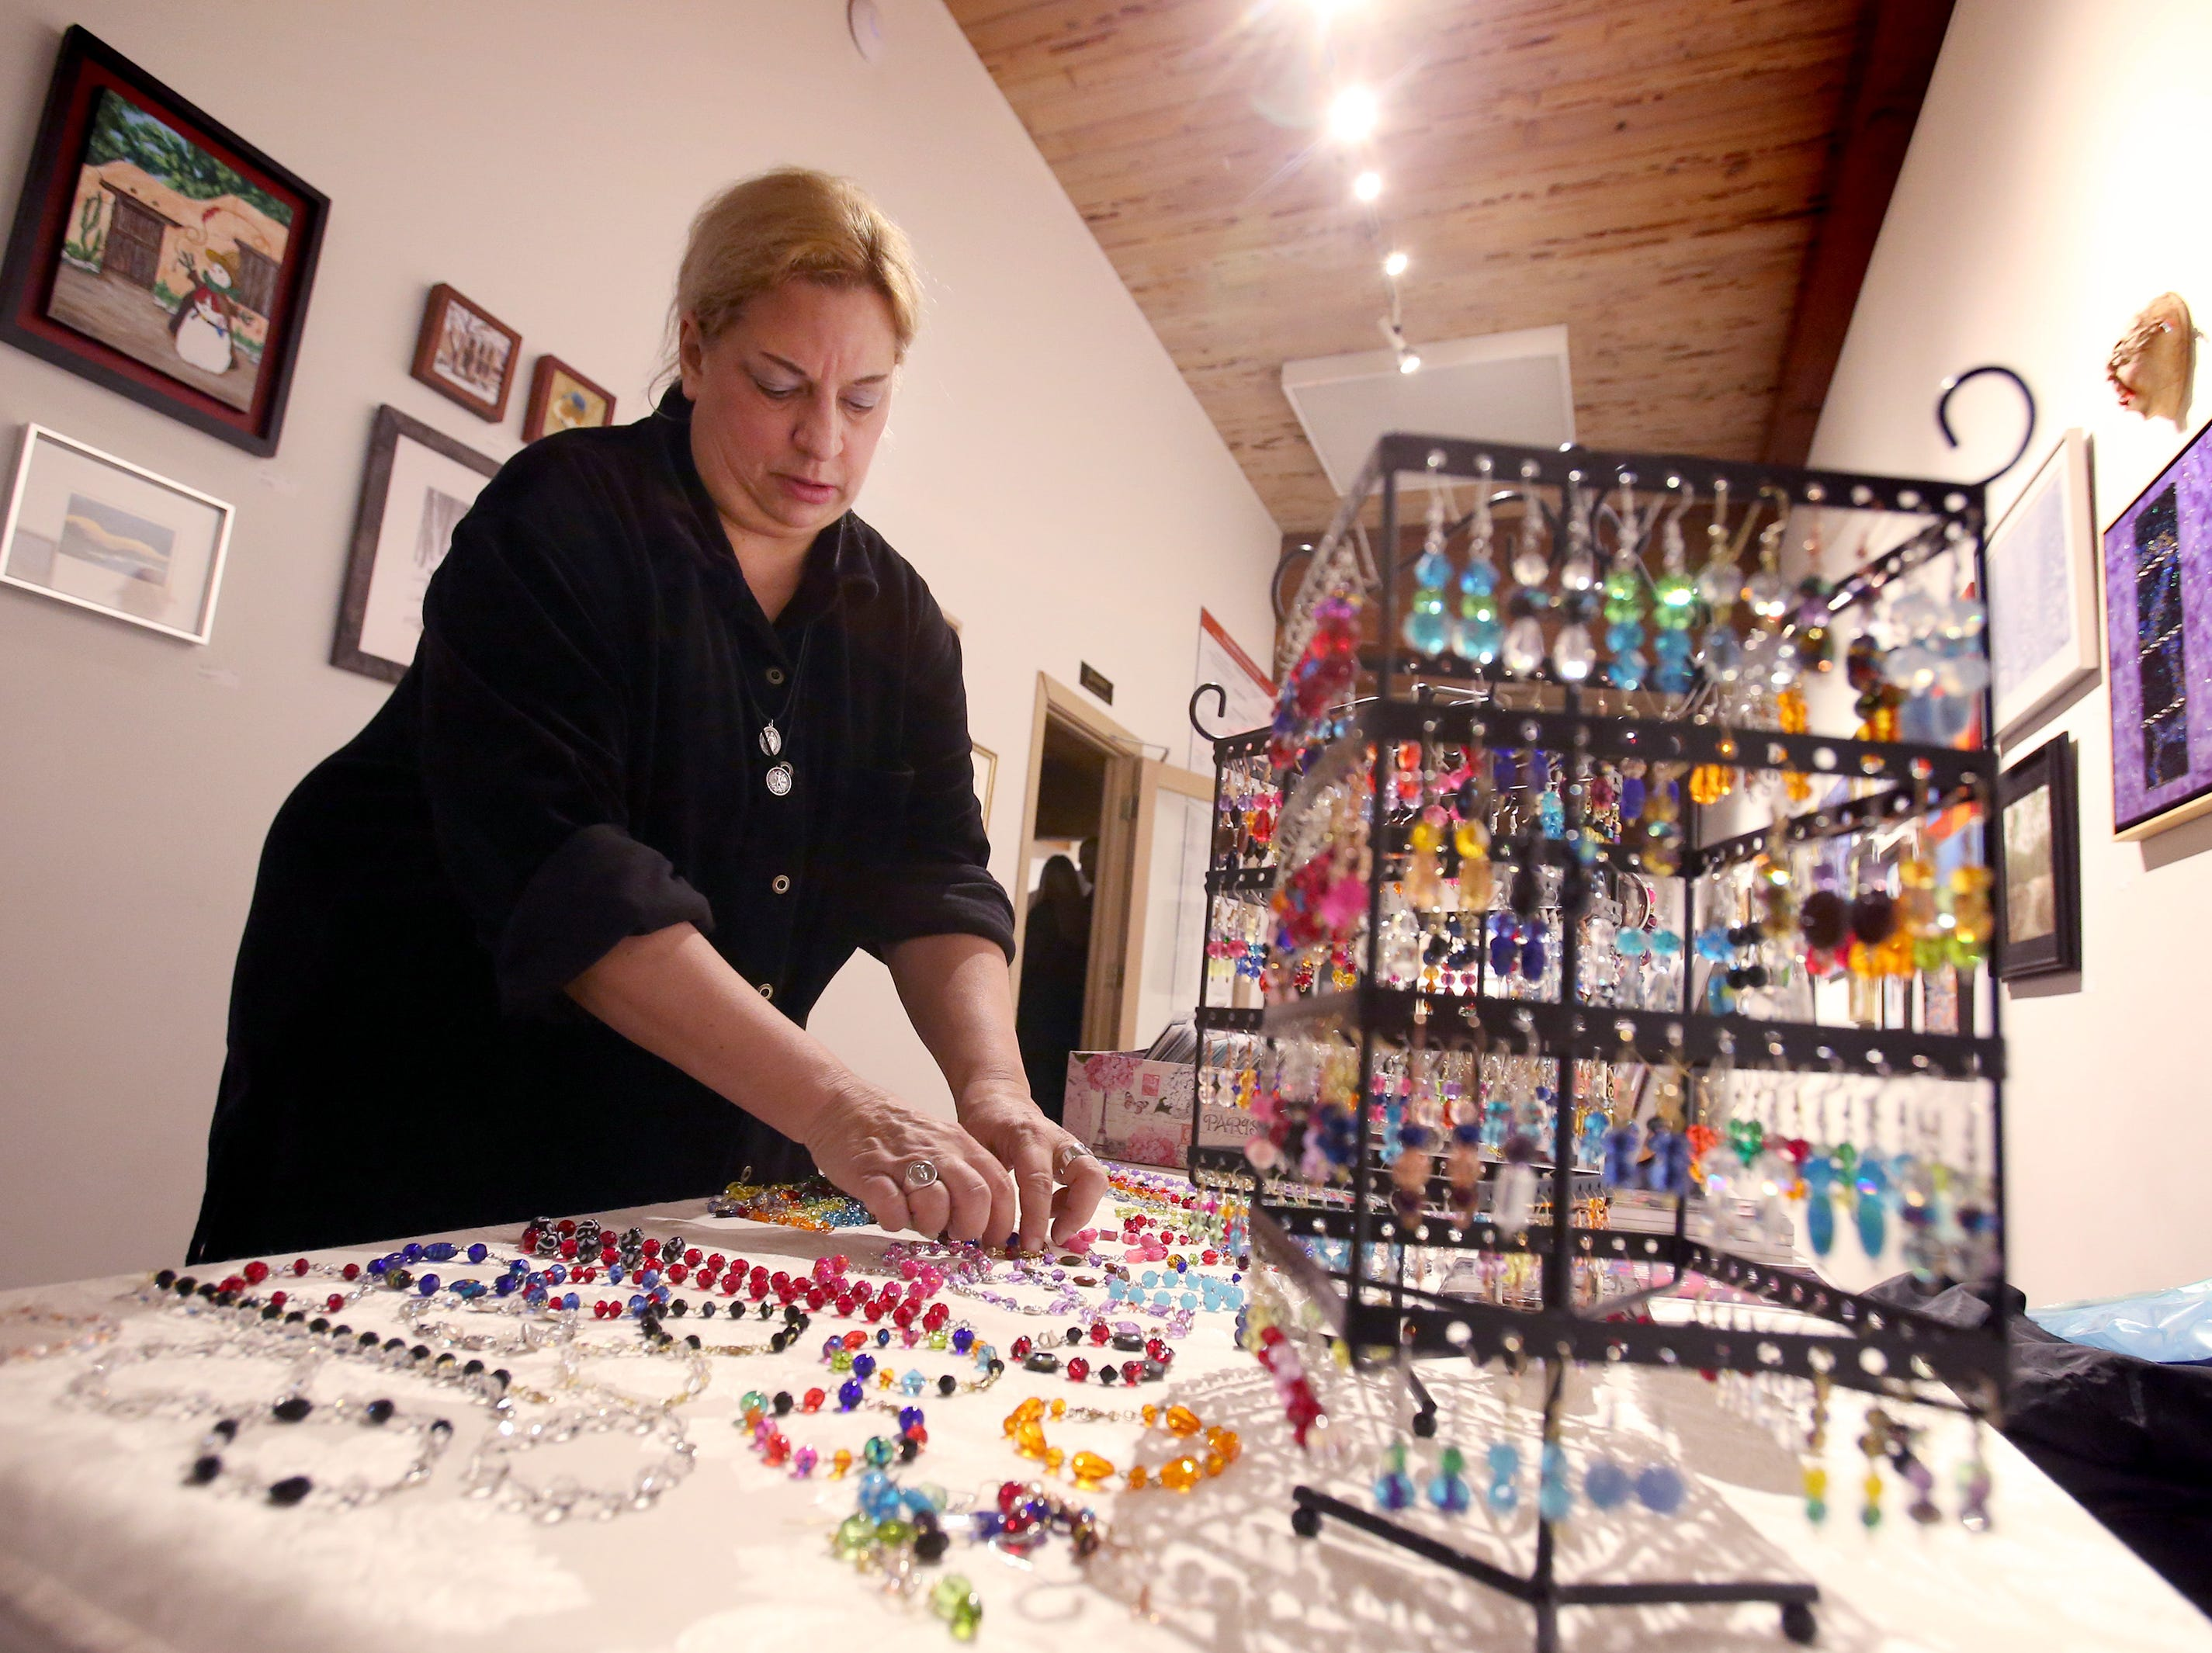 Sara Johann sets out her jewelry and artwork at the Cedarburg Cultural Center during a First Fridays event on Jan. 4.